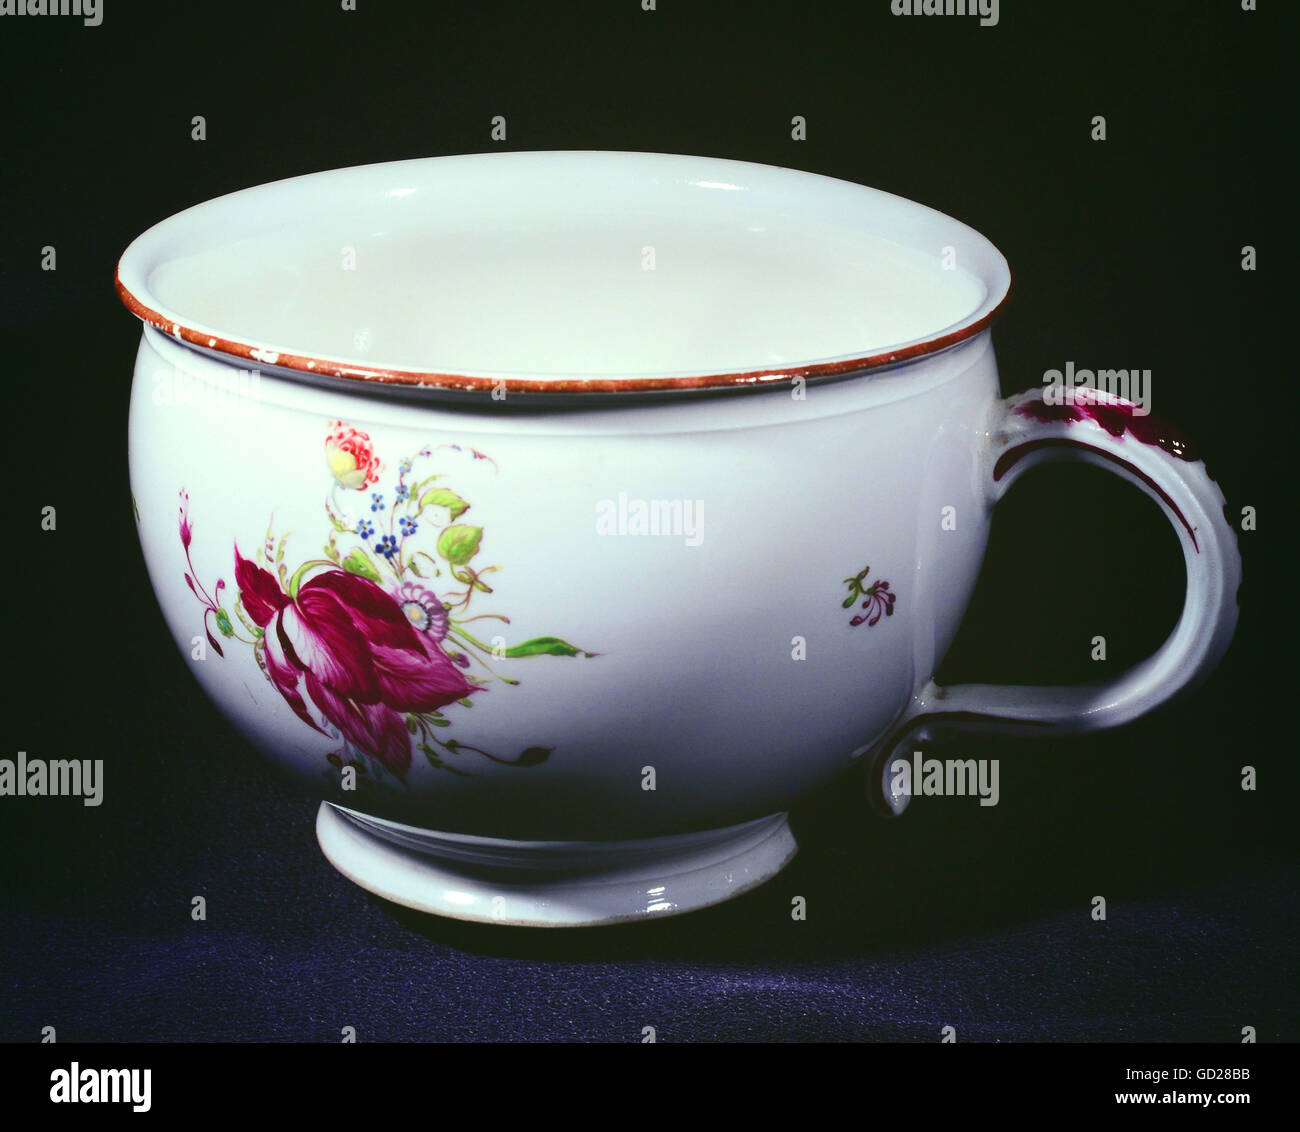 Bourdaloue Pot De Chambre Porcelain Pot Photos Porcelain Pot Images Alamy